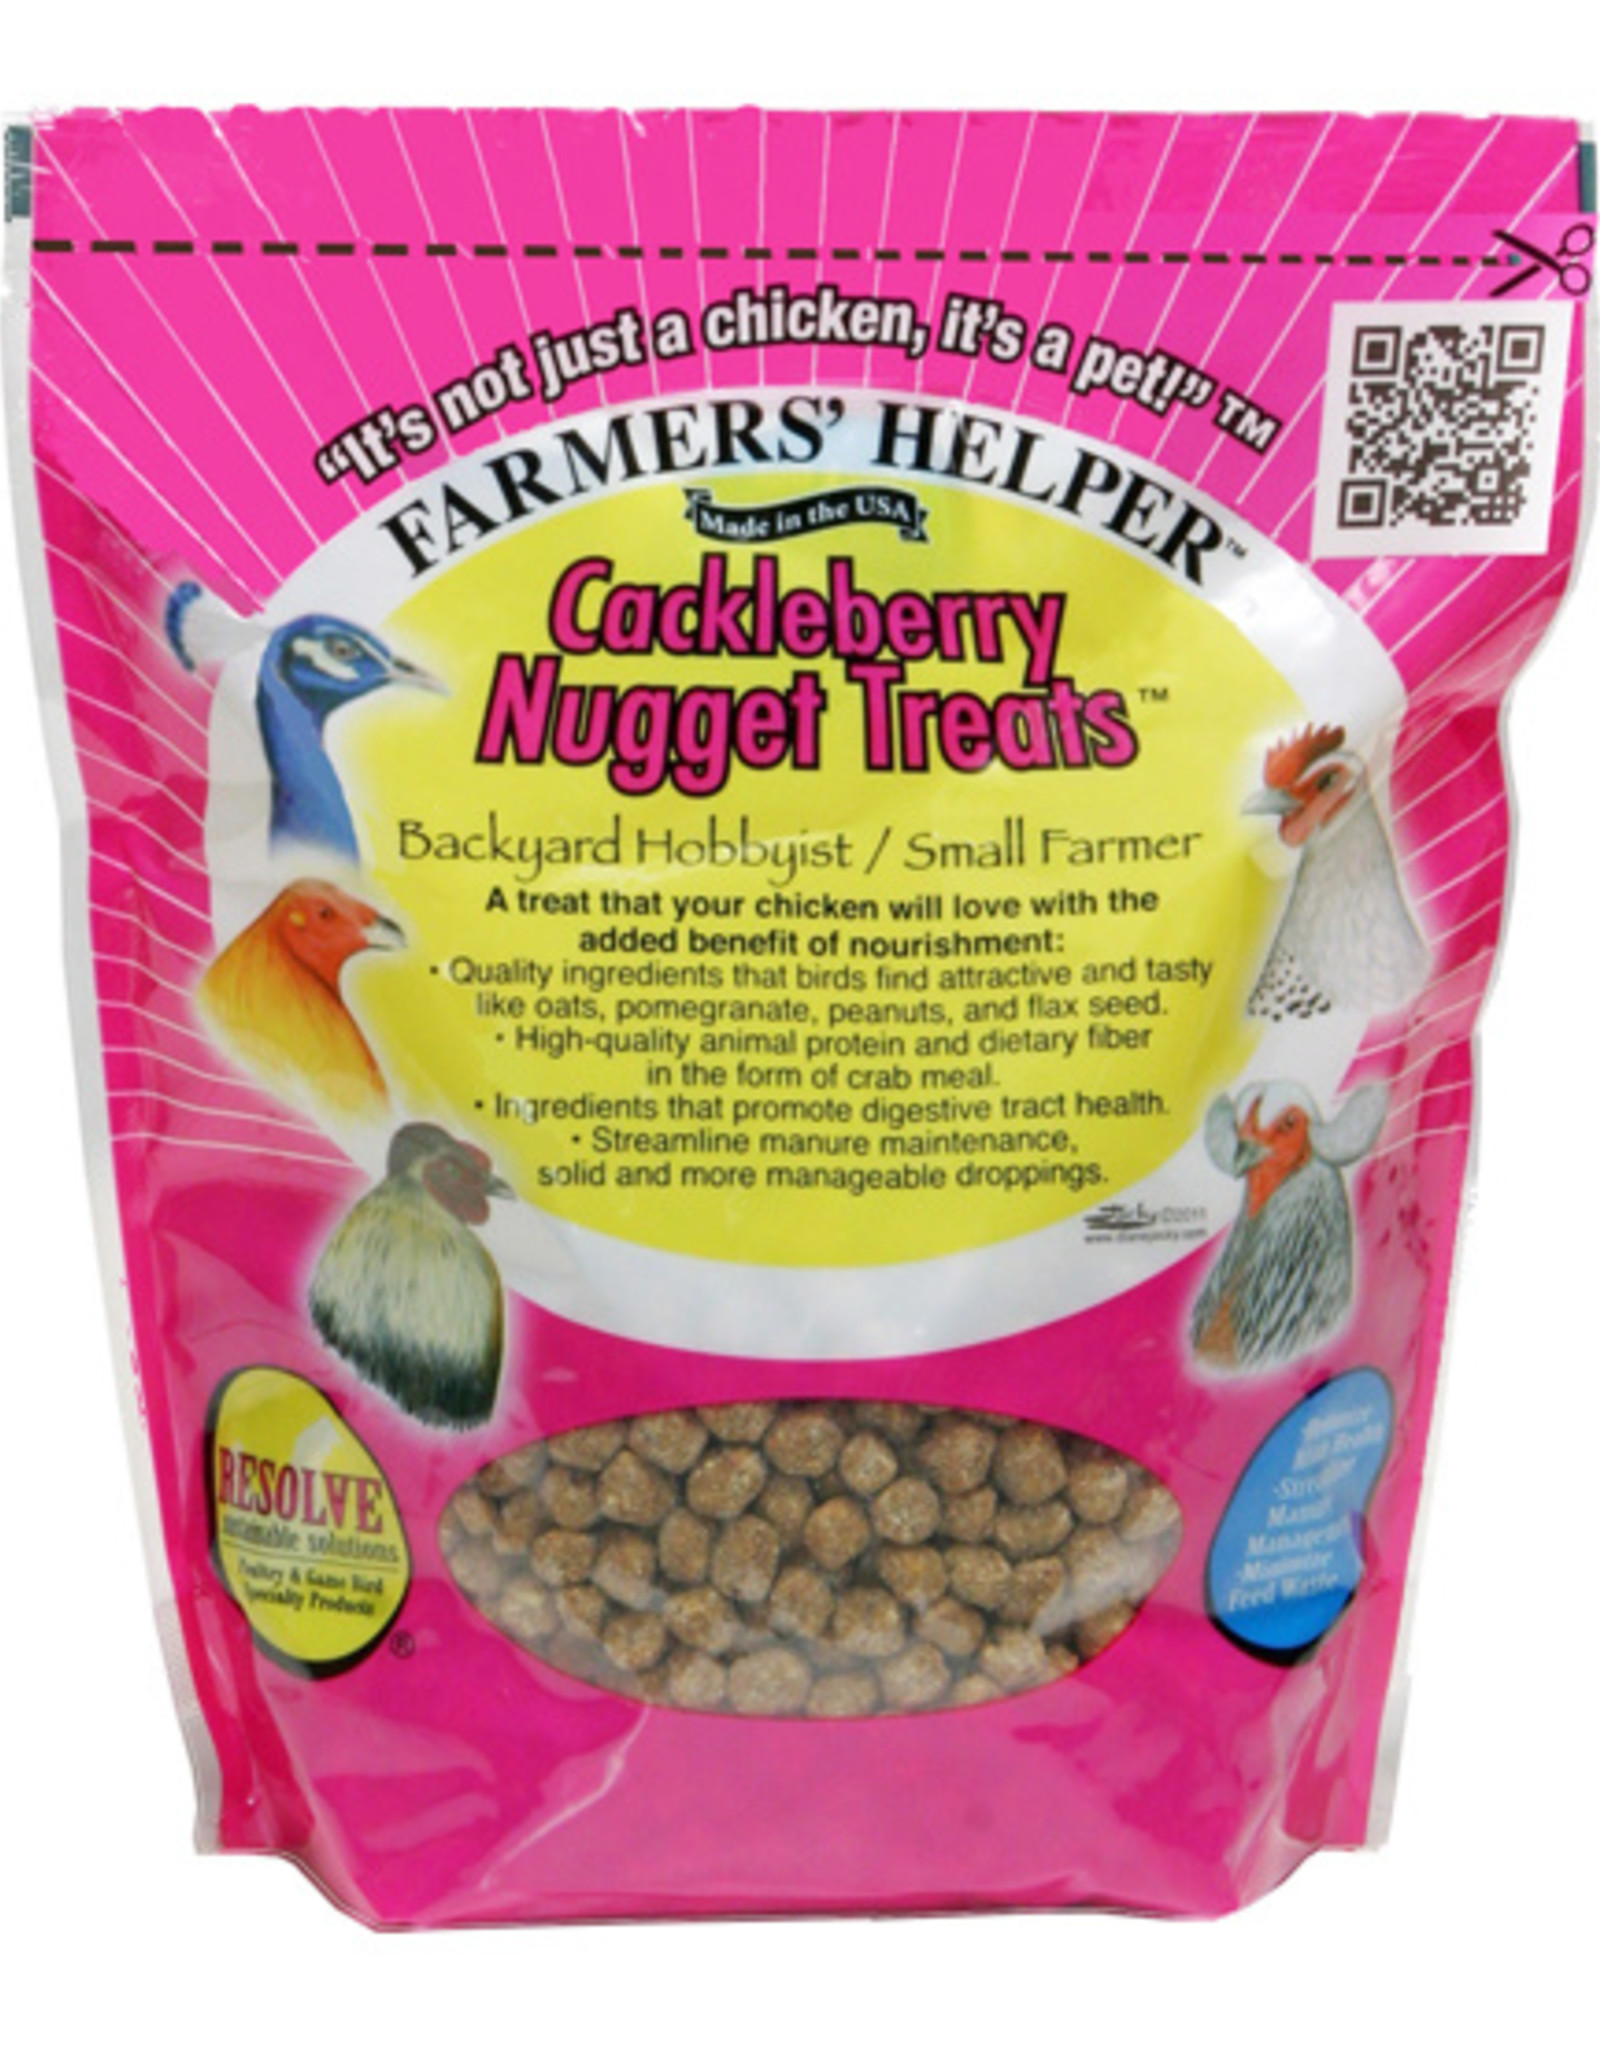 C AND S PRODUCTS CO INC P FARMERS' HELPER CACKLEBERRY NUGGET TREATS